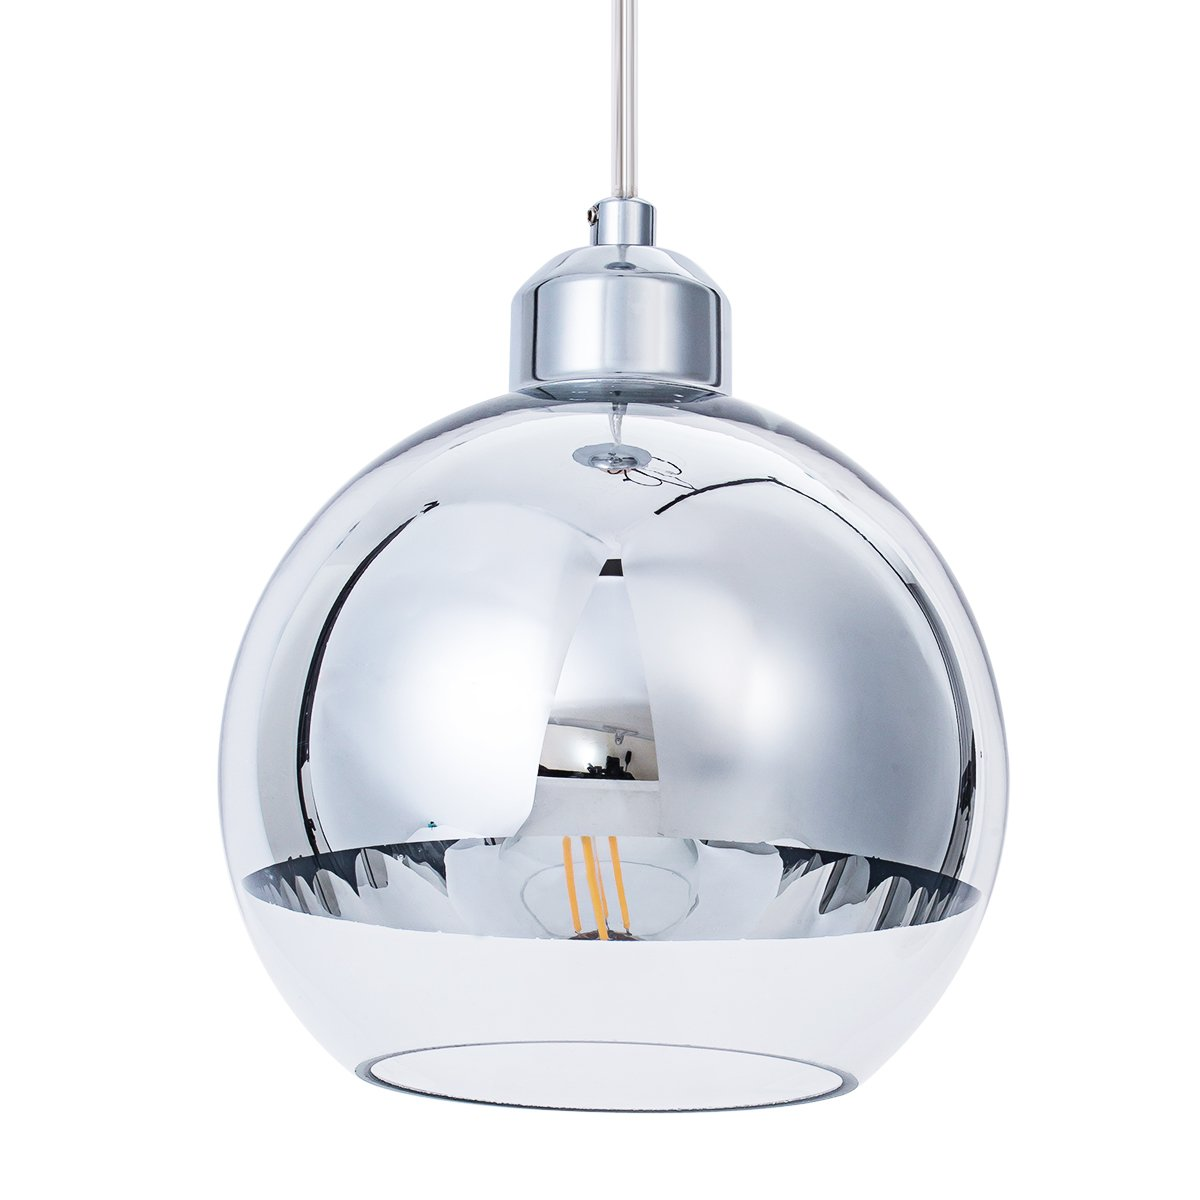 ShengQing Modern Mini Globe Pendant Light in Polished Chrome Finish with Hand Blown Clear Glass, Adjustable Mirror Ball Pendant Lighting for Kitchen Island, Bar, Dining Room, Bedroom, 8in